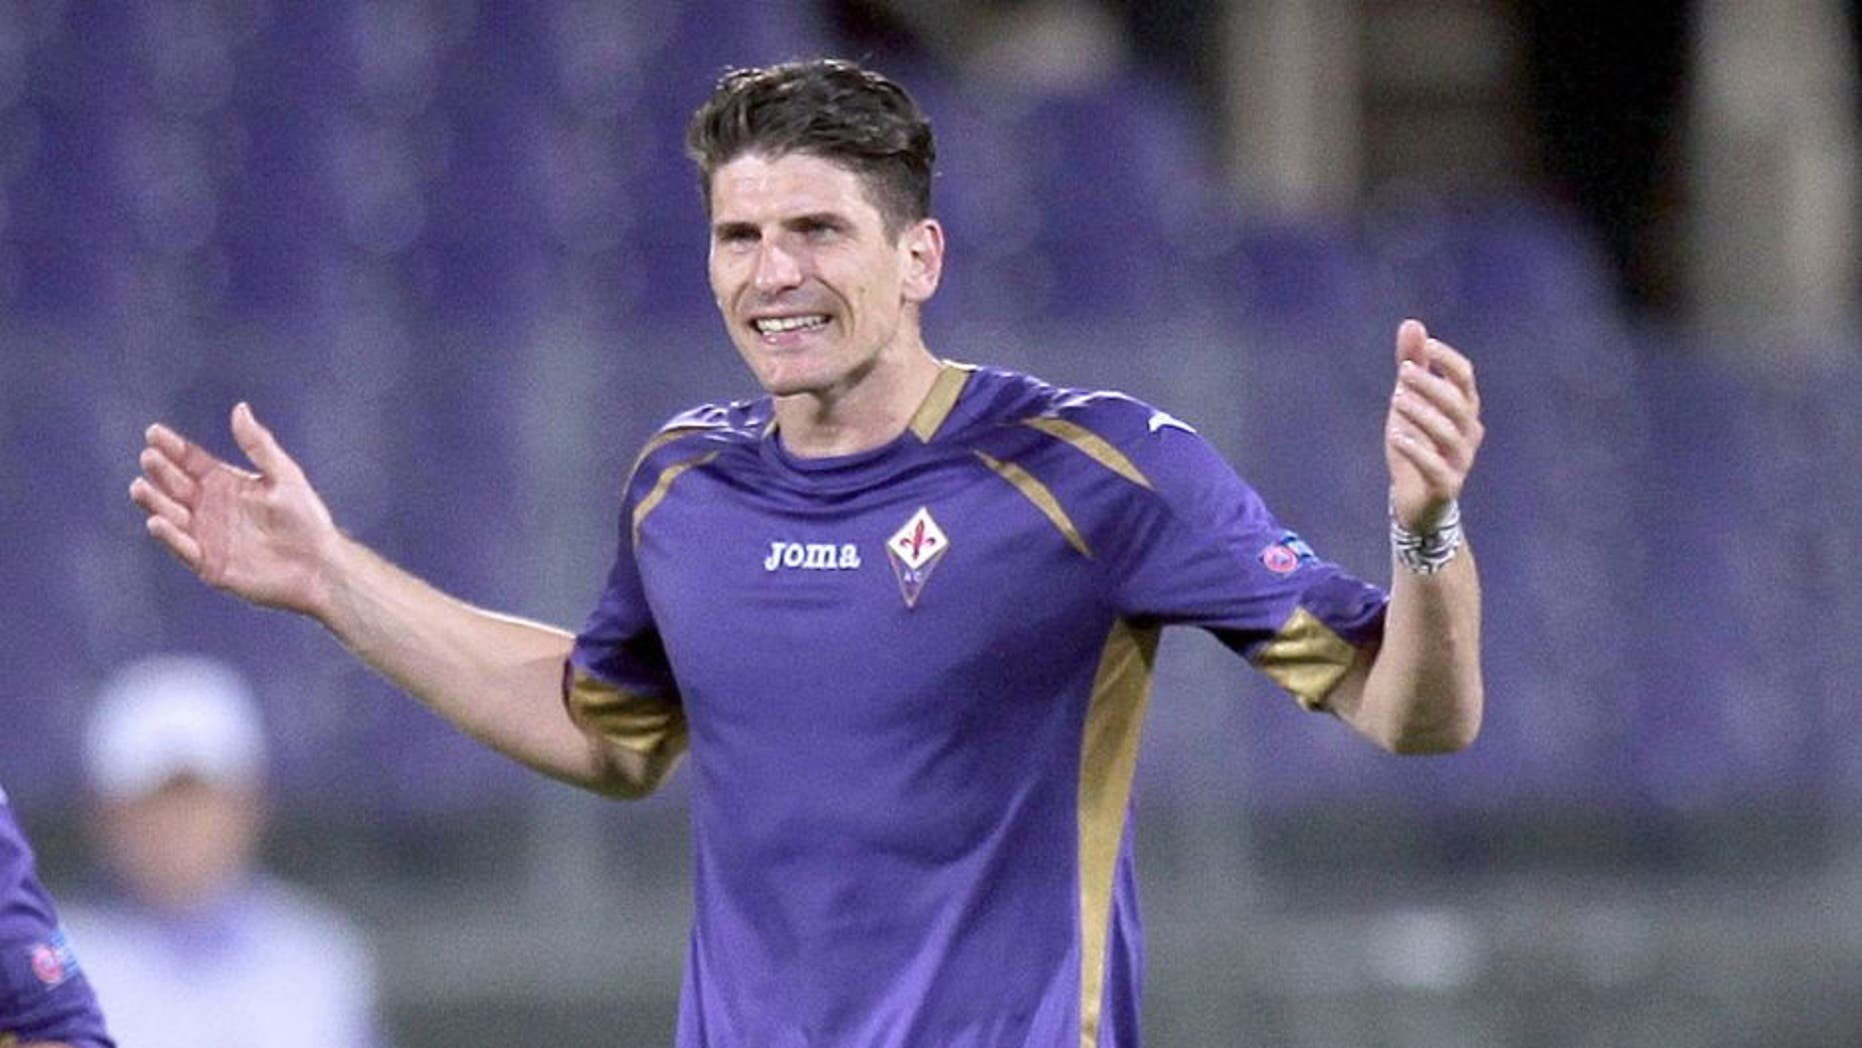 FLORENCE, ITALY - APRIL 23: Mario Gomez of ACF Fiorentina celebrates after scoring a goal during the UEFA Europa League Quarter Final match between ACF Fiorentina and FC Dynamo Kyiv on April 23, 2015 in Florence, Italy. (Photo by Gabriele Maltinti/Getty Images)